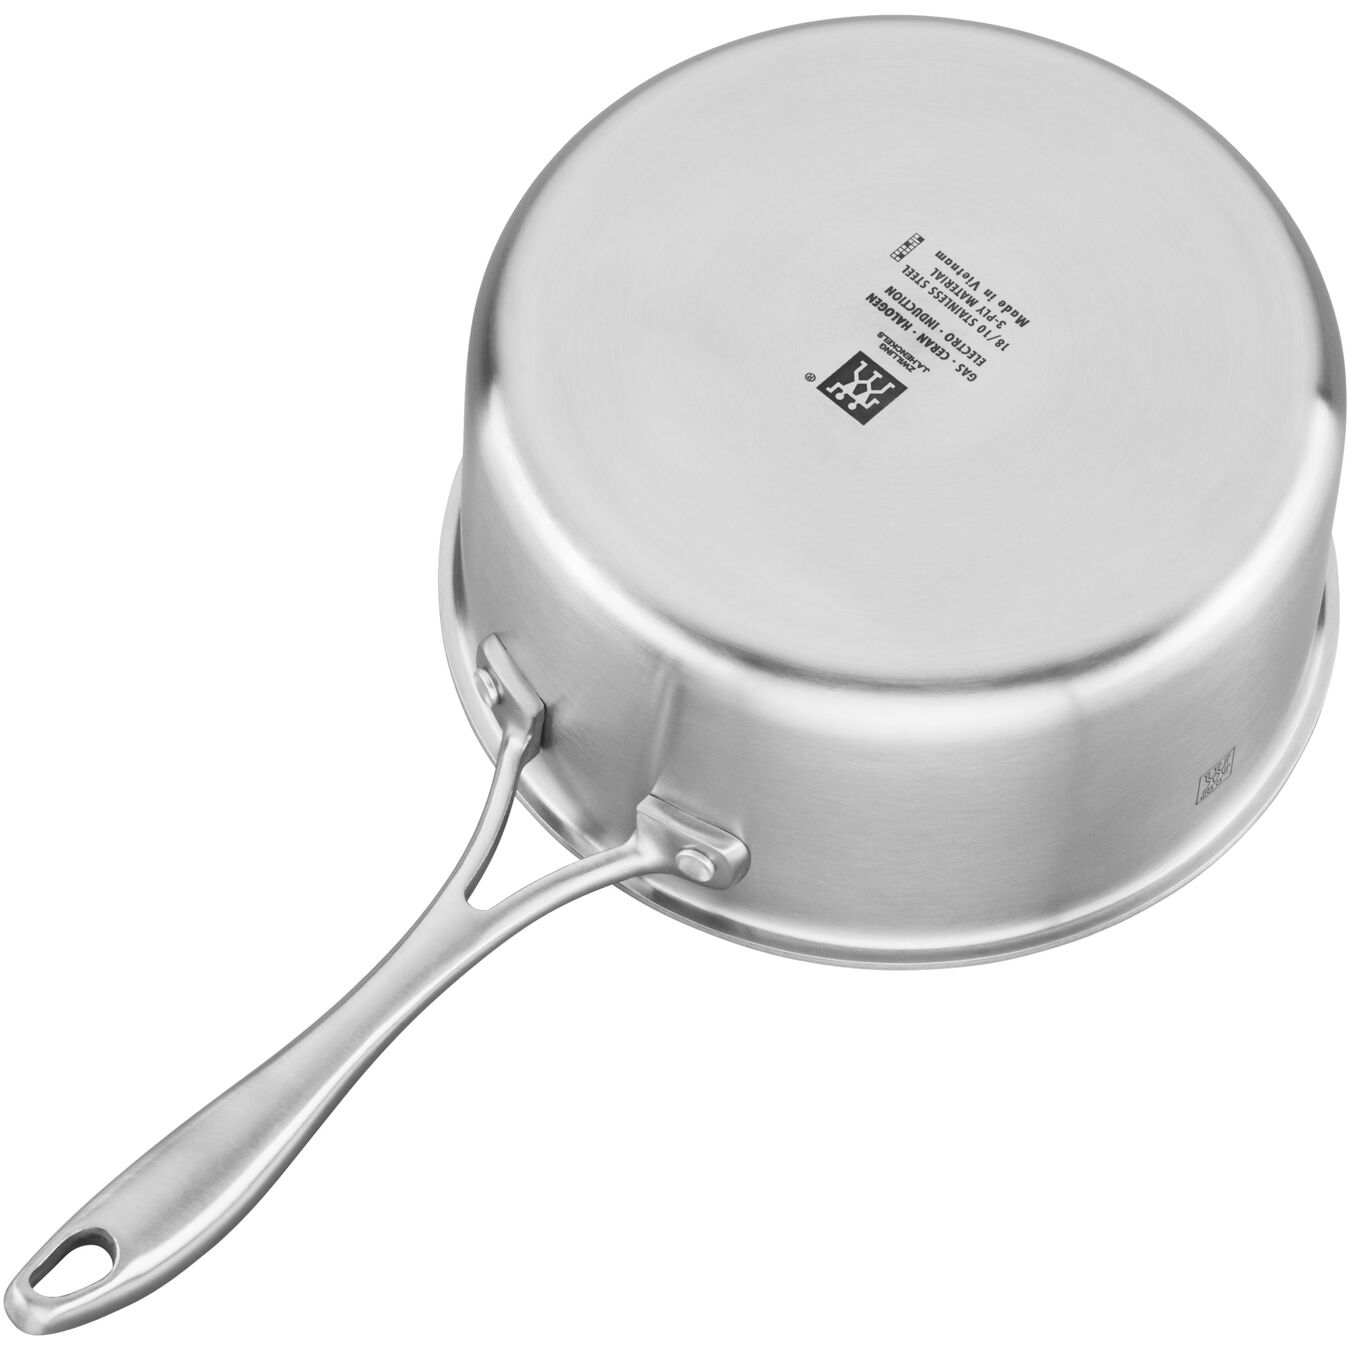 3-ply 3-qt Stainless Steel Ceramic Nonstick Saucepan,,large 4